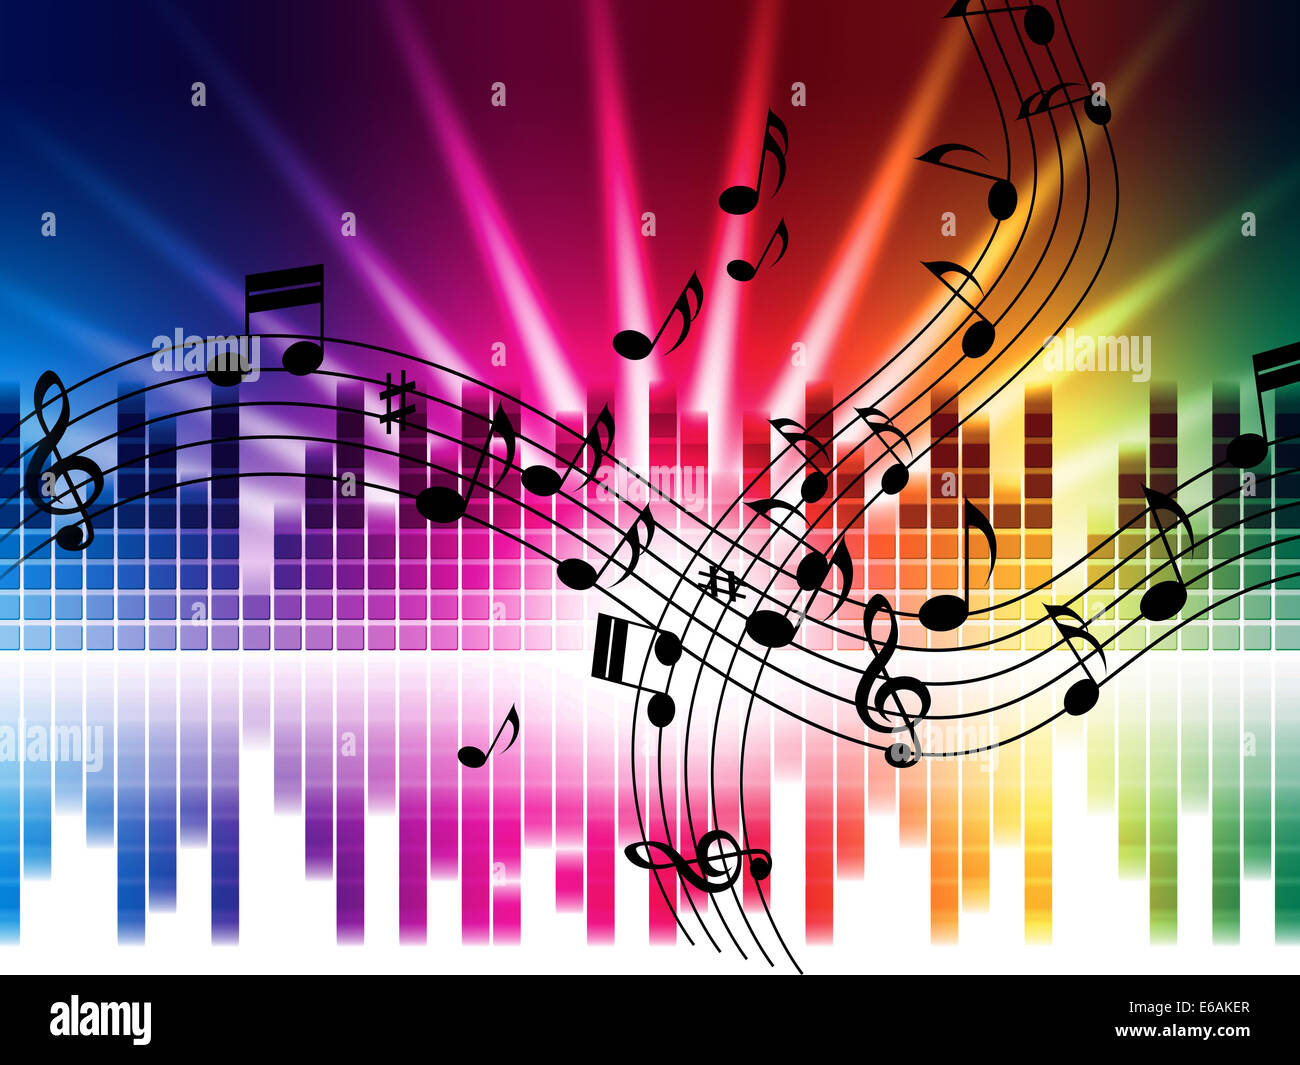 Rainbow Music Background Meaning Colorful Lines And Melody: Music Background Meaning Playing Songs Stock Photos